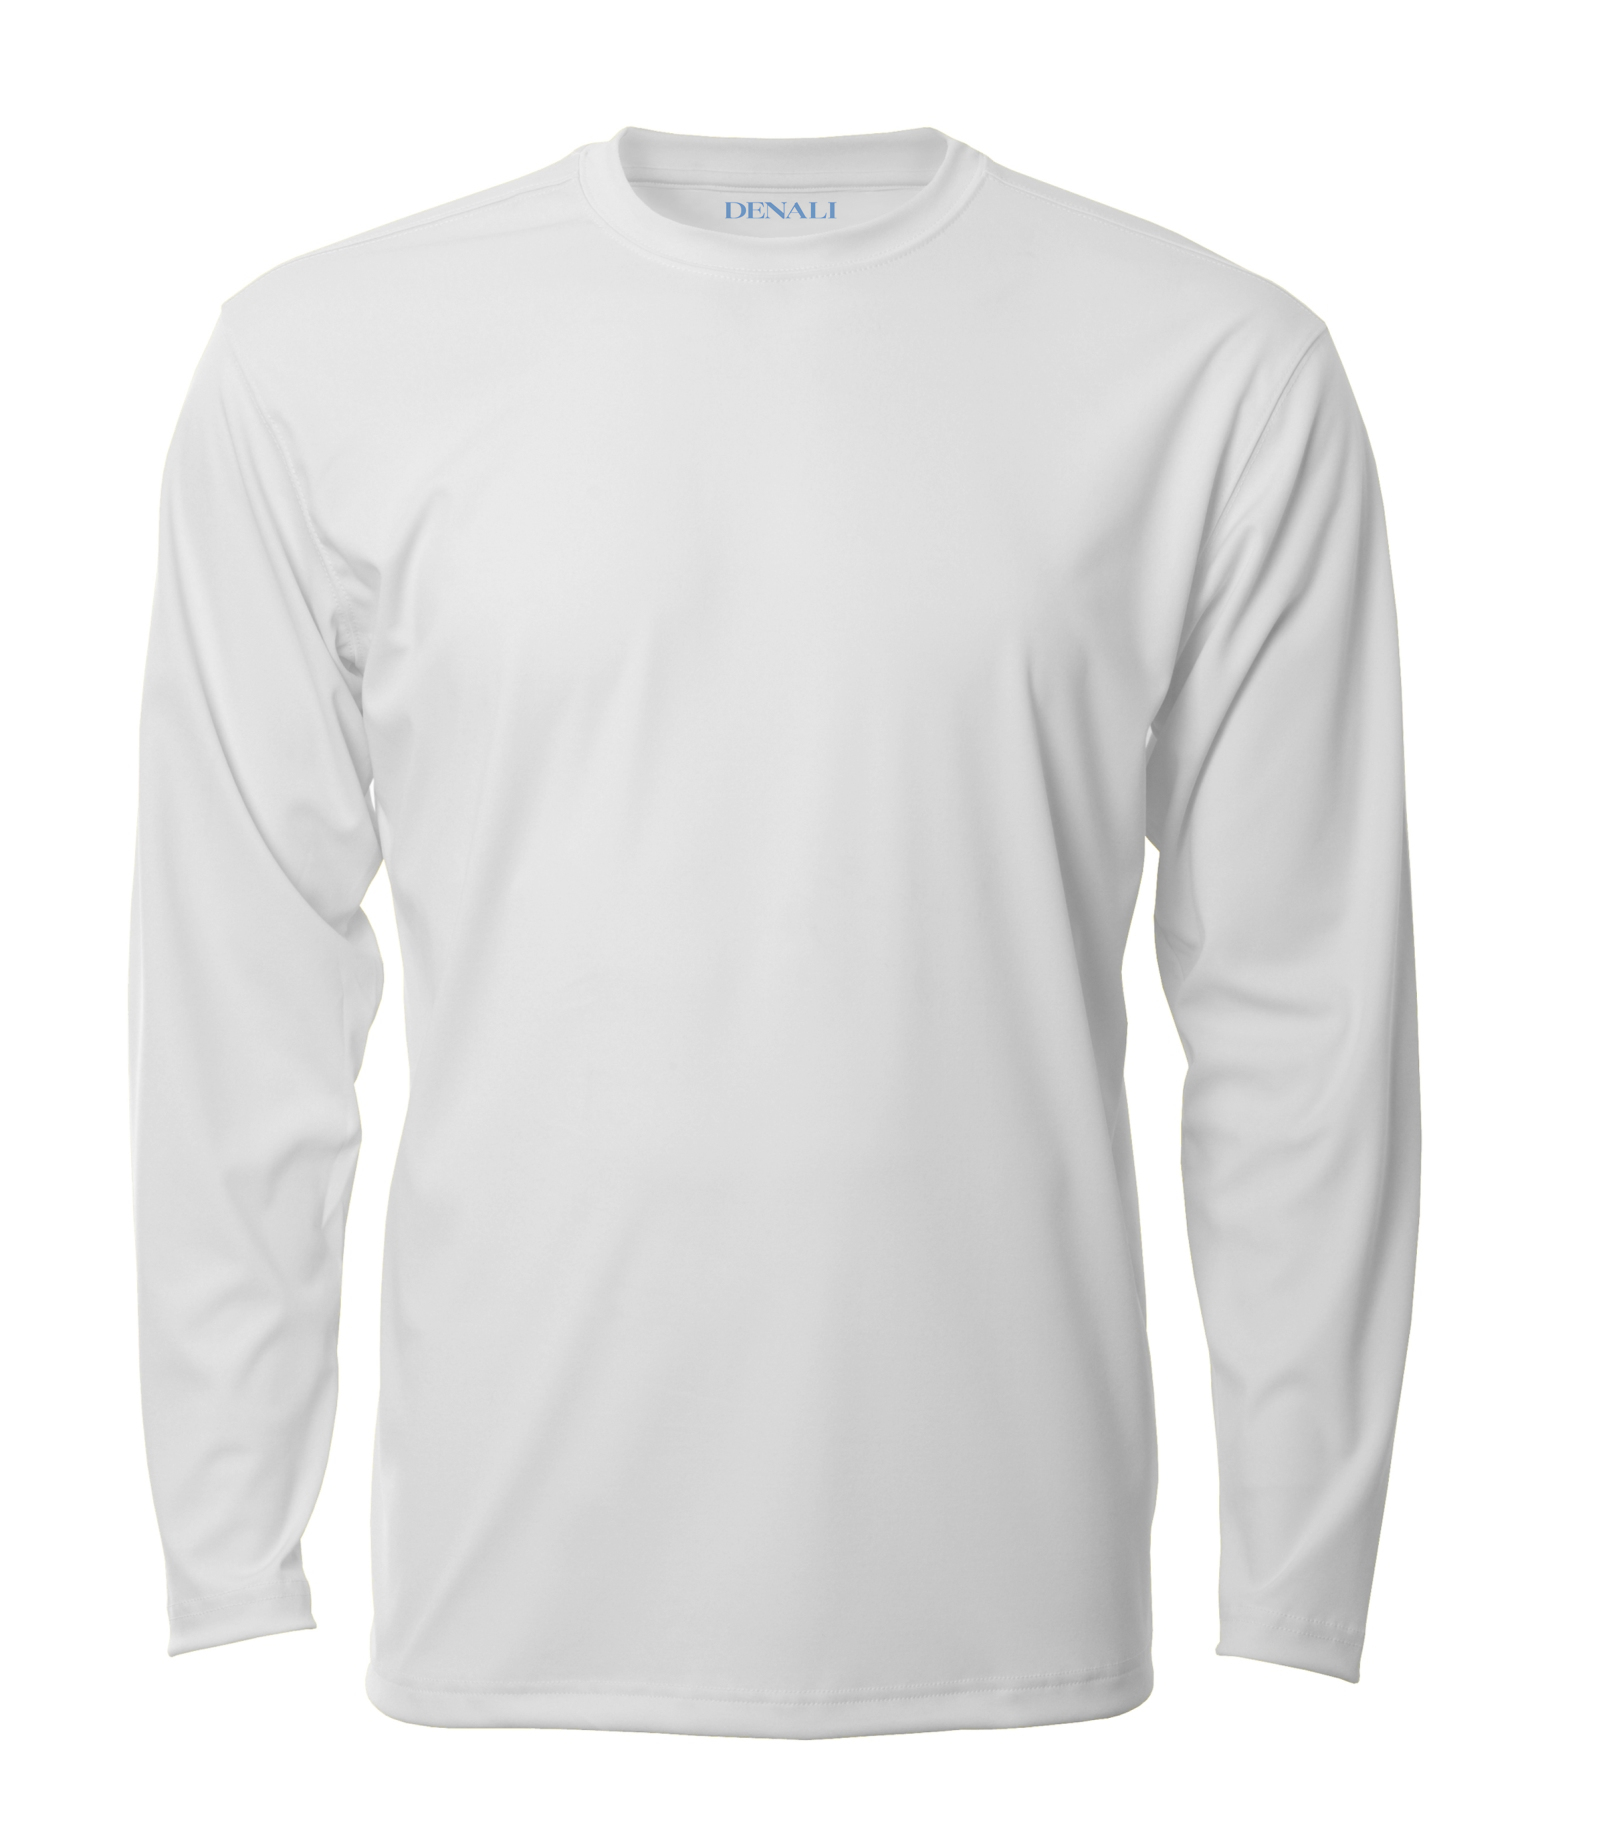 Mens white long sleeve shirt greek t shirts Mens long sleeve white t shirt